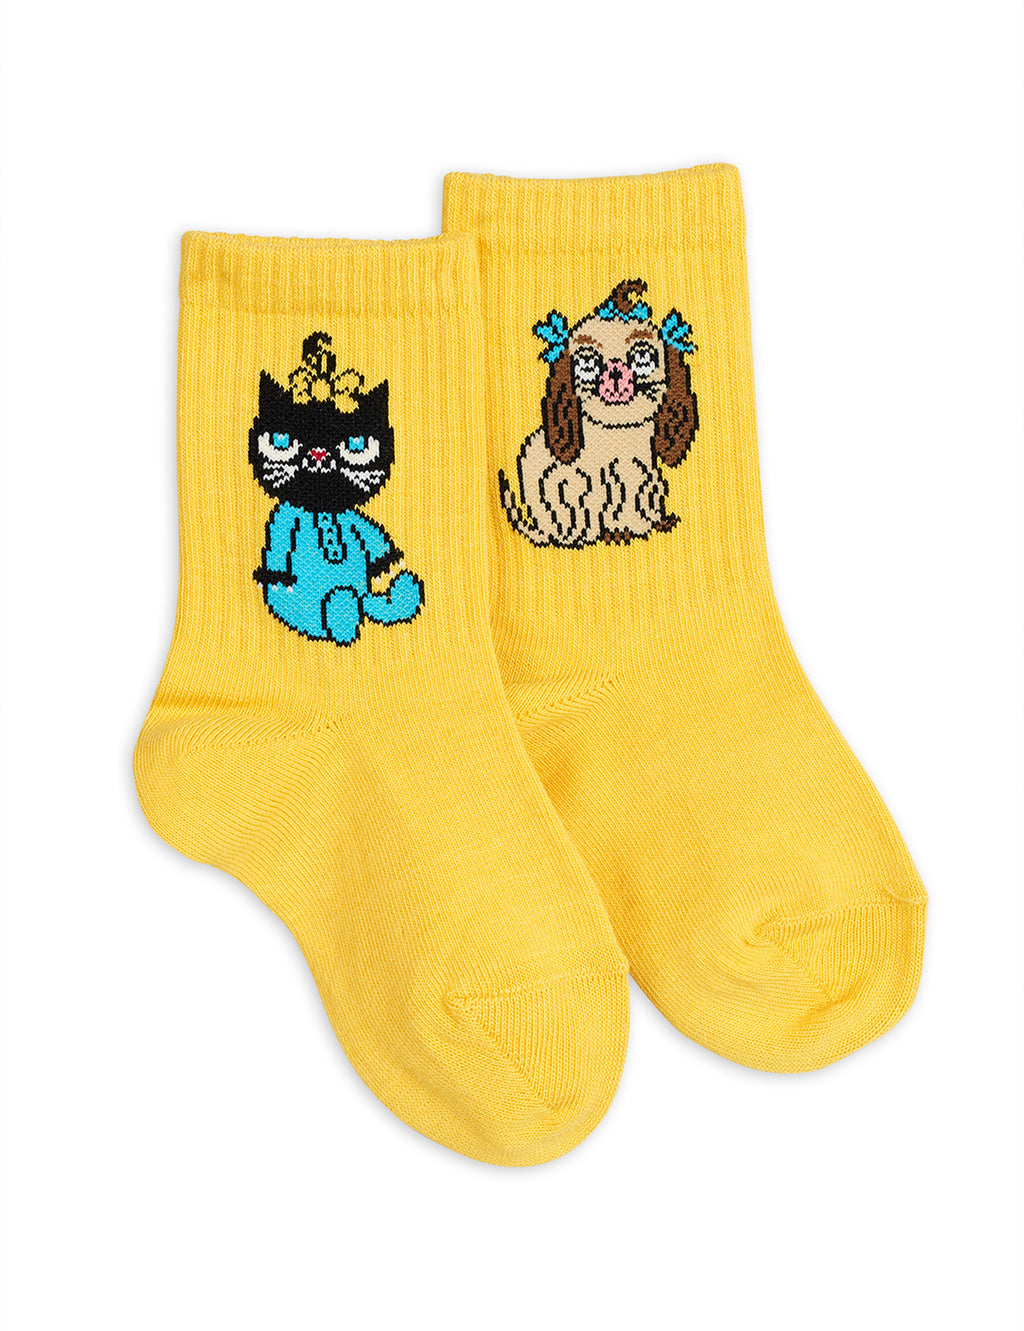 Girls and boys yellow socks made with soft organic cotton. One sock has a yellow cat motif, and the other has a brown dog. Both classic avatars of the children clothes' designer Mini Rodini